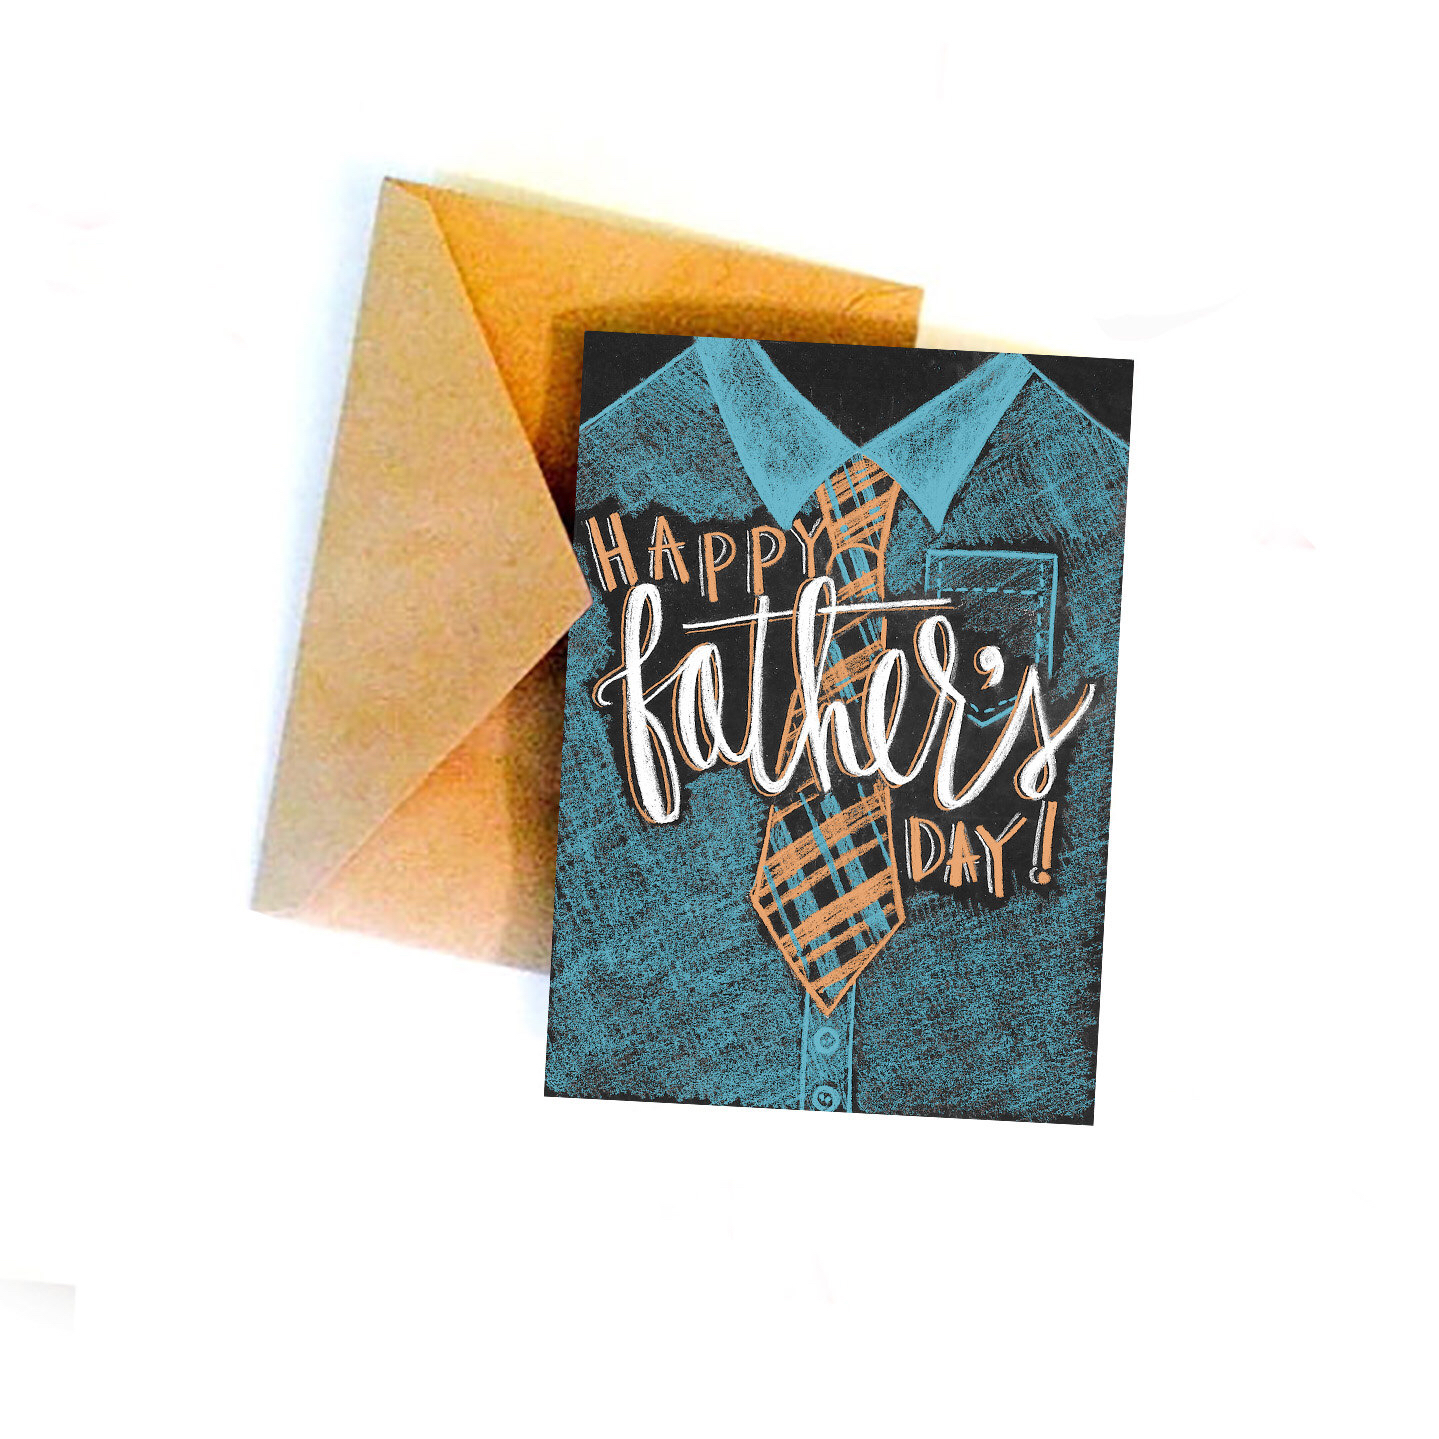 Drawn tie father's day Day Father's Shirt hand and